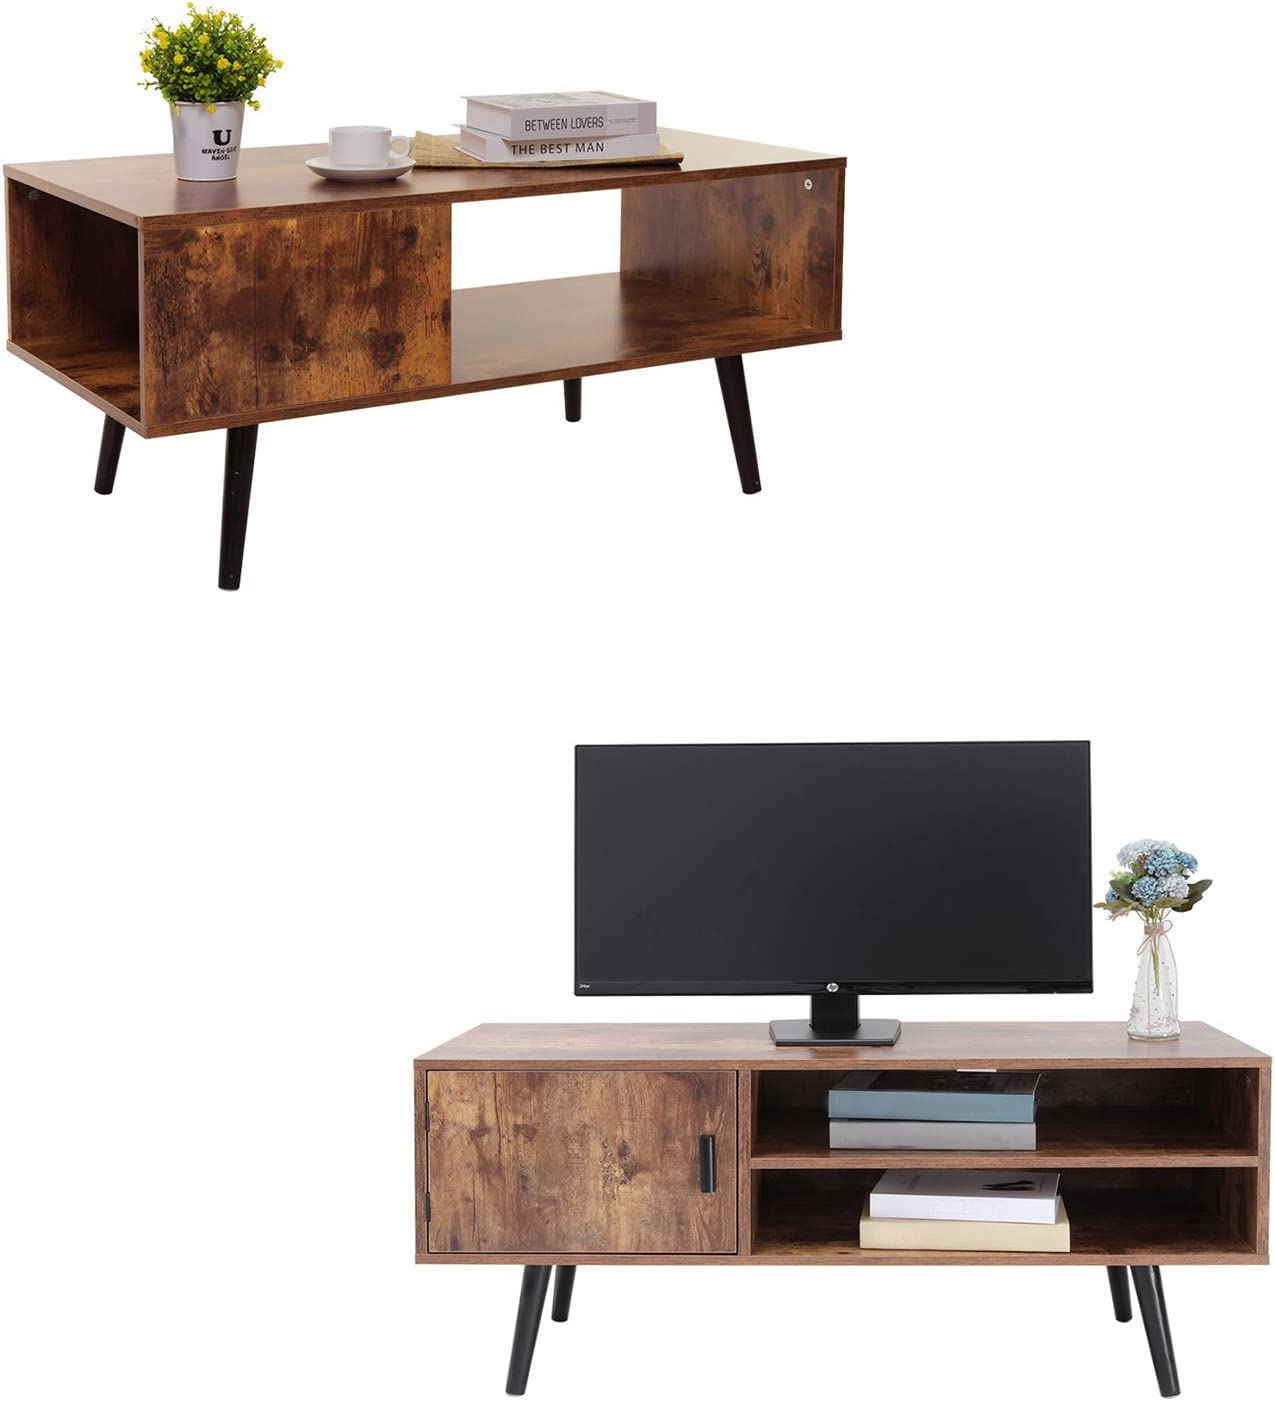 USIKEY Mid-Century Modern Coffee Table & TV Stand with with 2 Storage Shelves&Door, Retro Rectangular Cocktail Table, Retro Entertainment Center, TV Table, Sofa Table, Rustic Brown